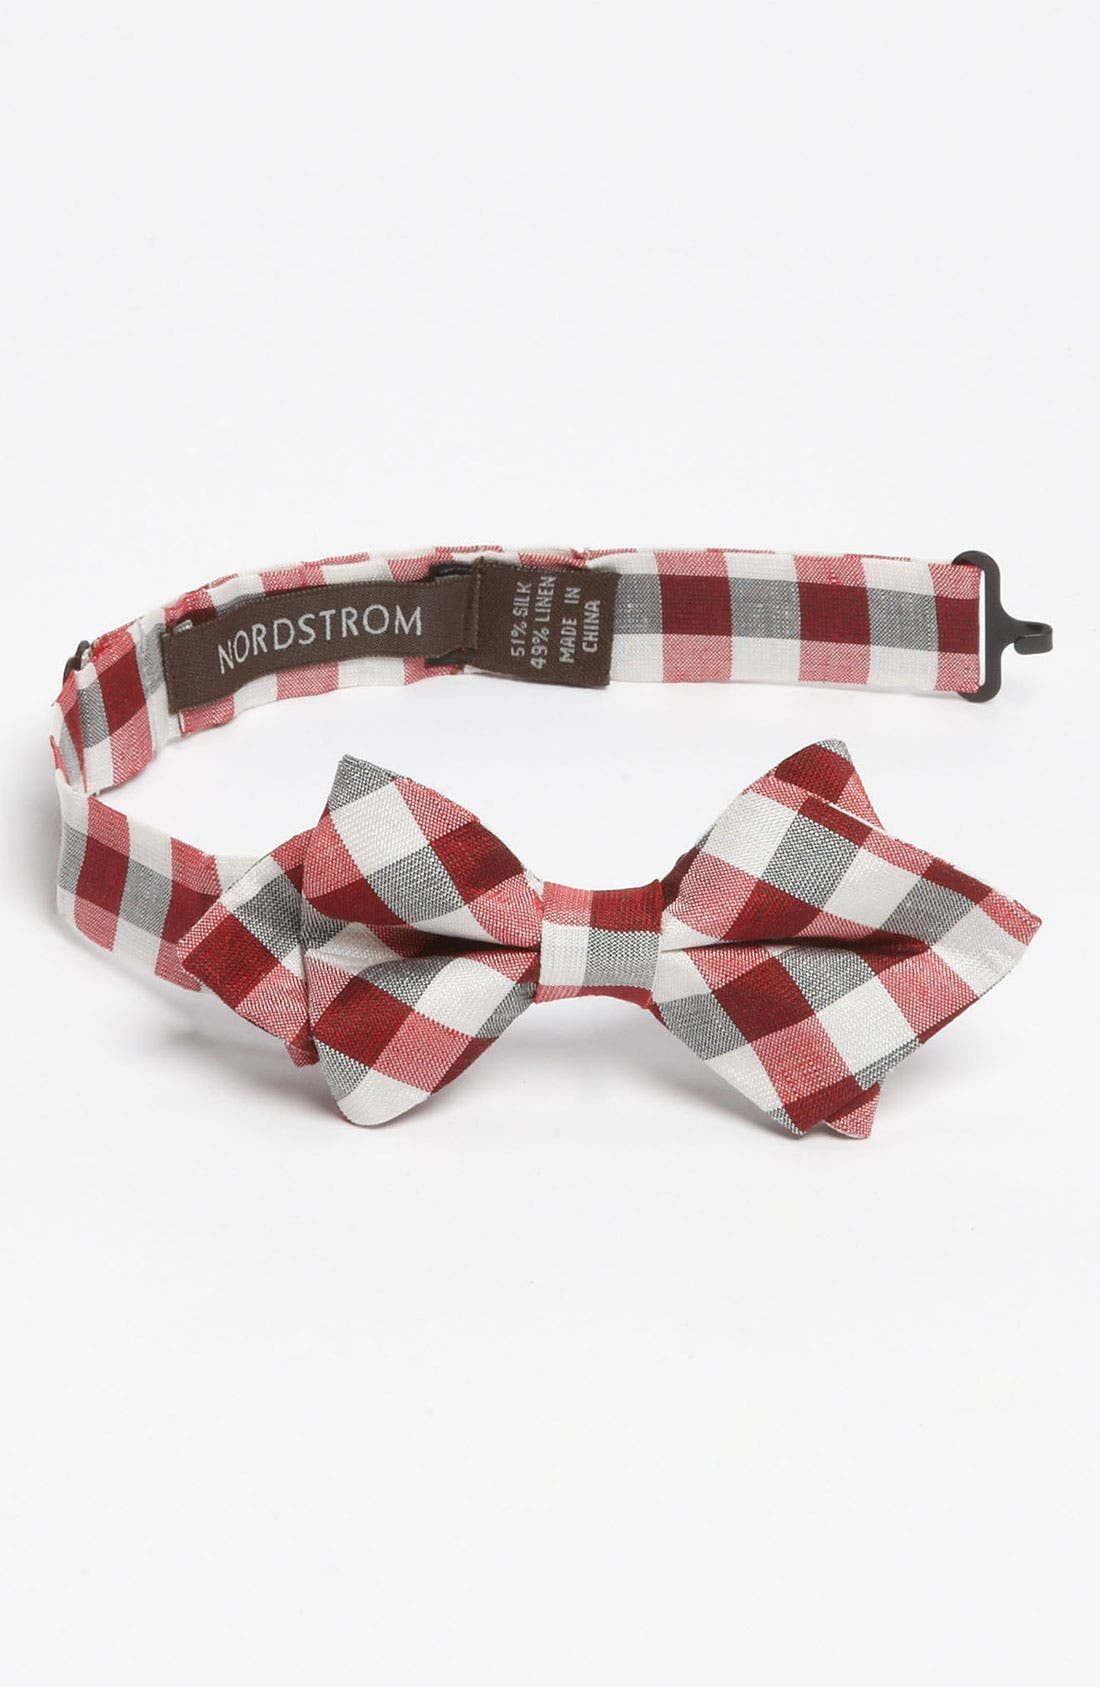 Main Image - Nordstrom Gingham Bow Tie (Little Boys)